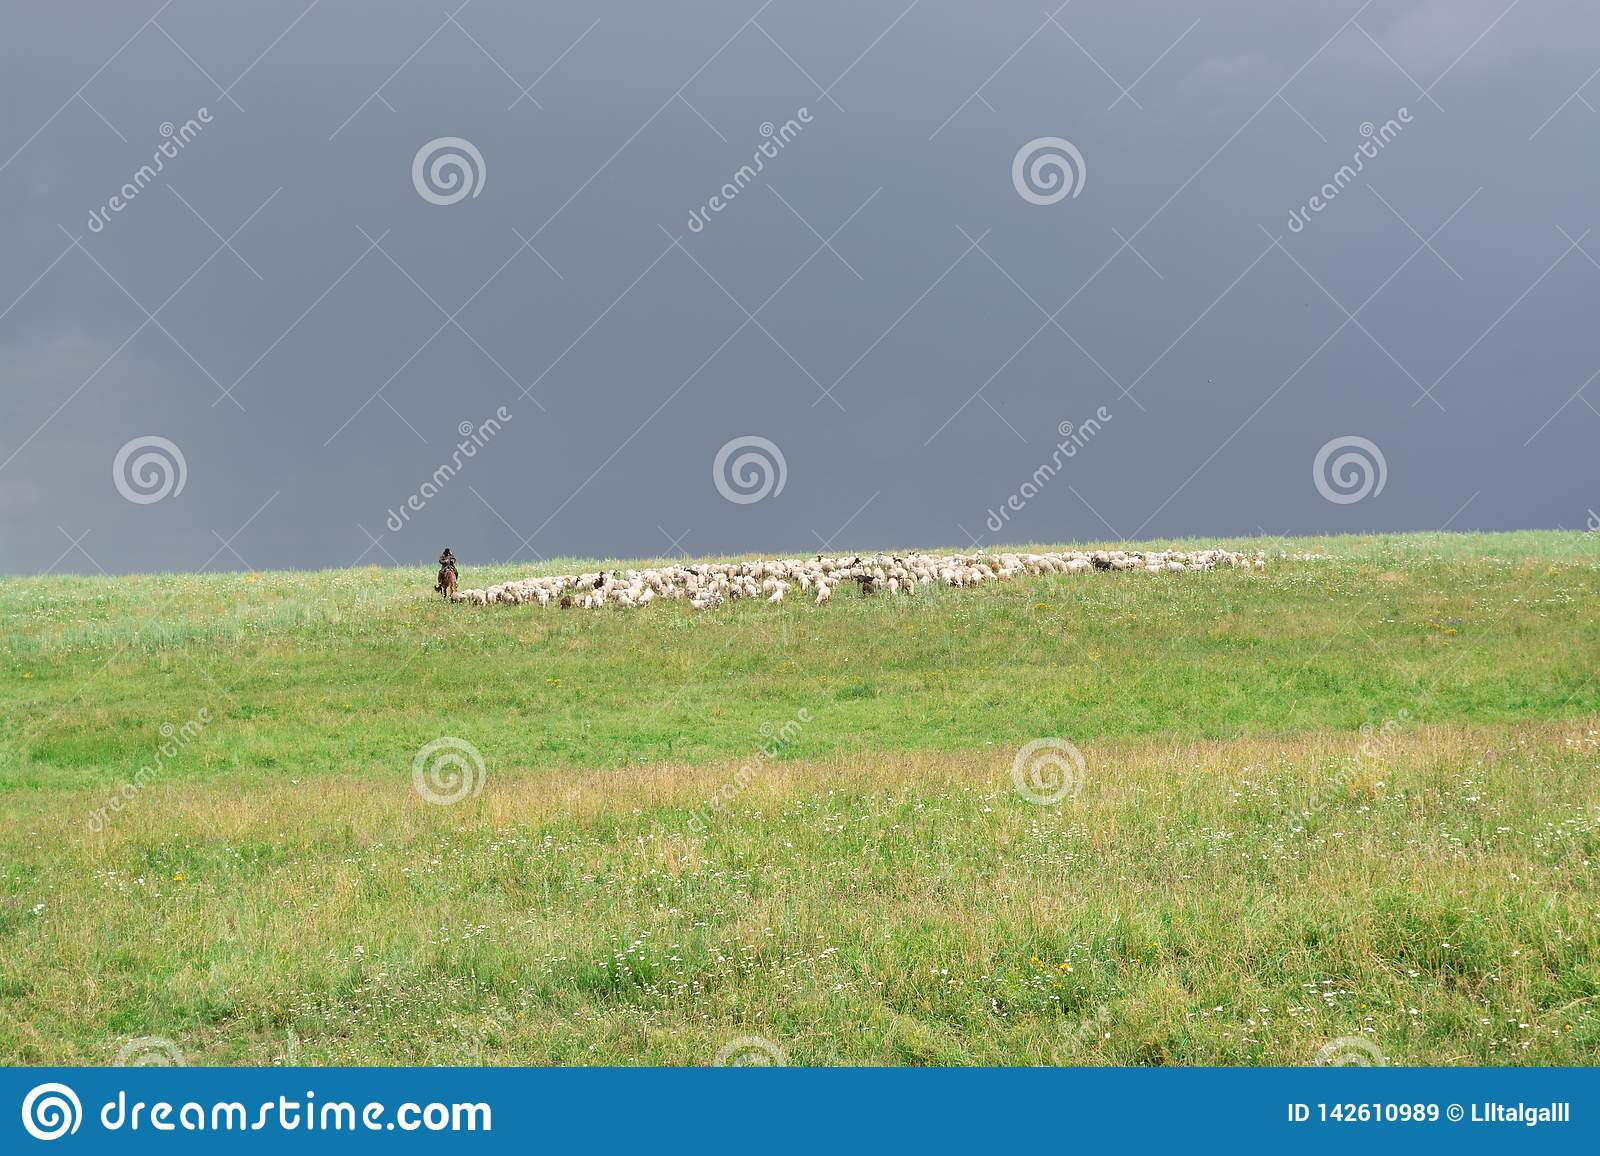 Shepherd with sheep. Flock graze on the hill. Green Hill. Summer season.